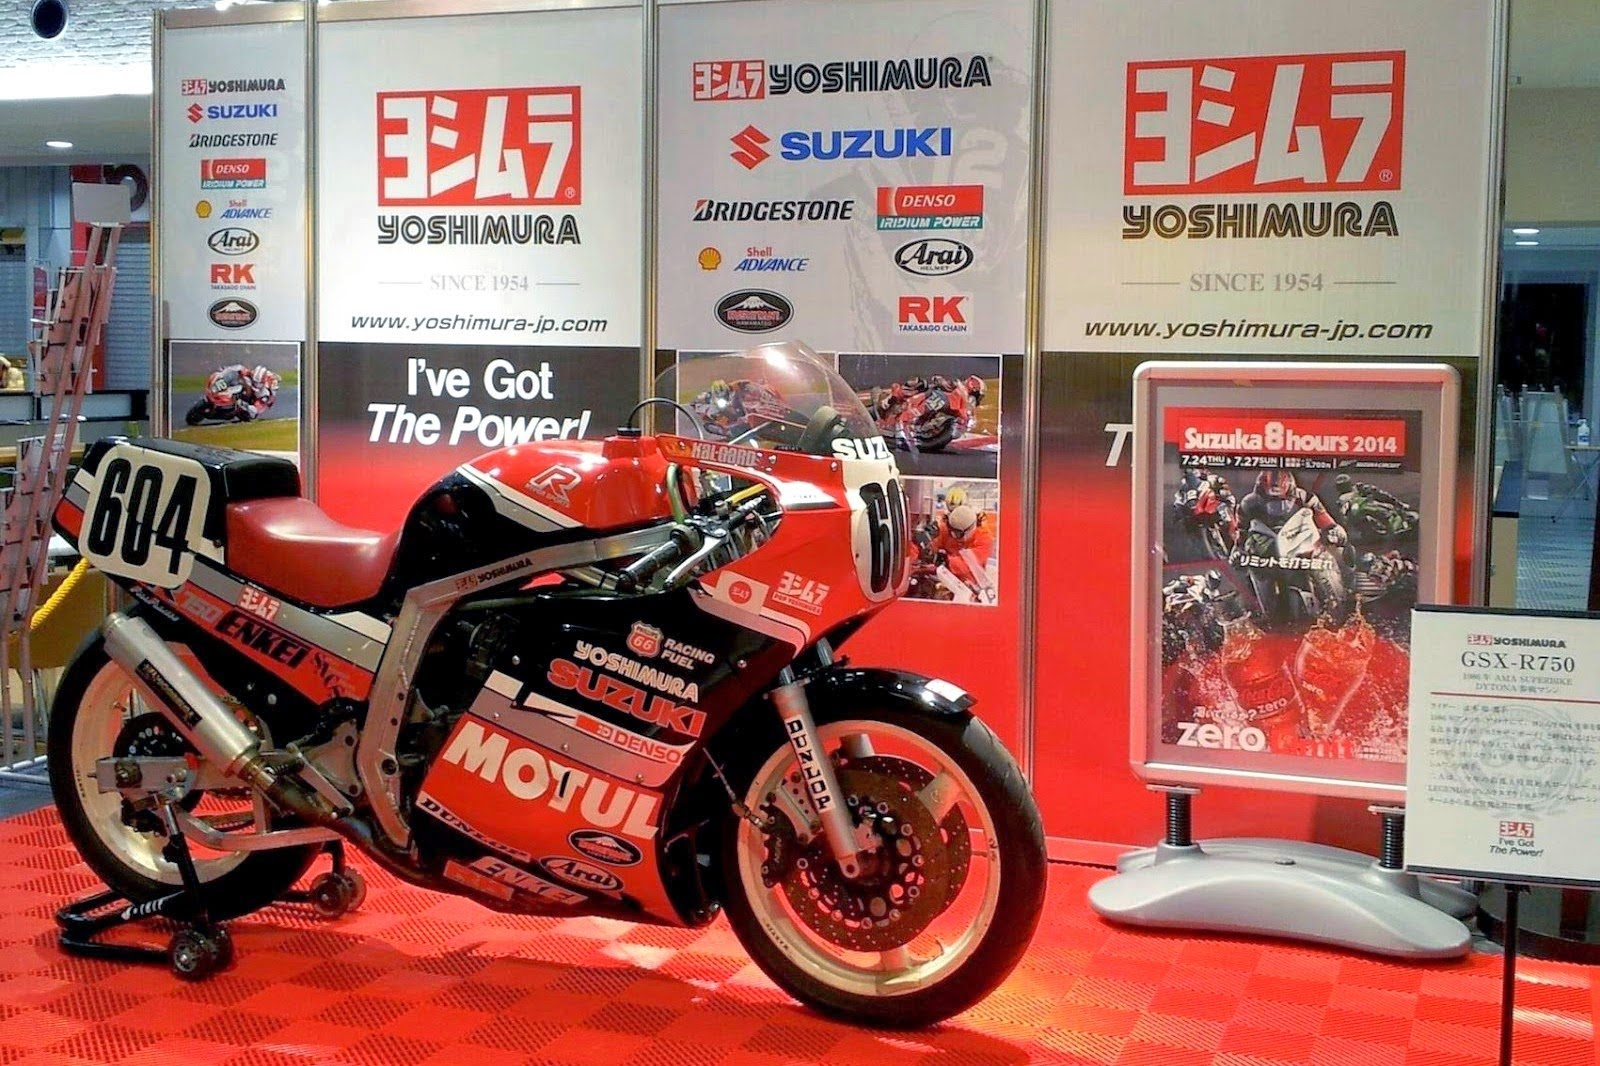 Hideo Pops Yoshimura October 7 1922 March 29 1995 Was A Motorcycle Tuner Race Team Owner And Manufacturer Of Speciality Accessories